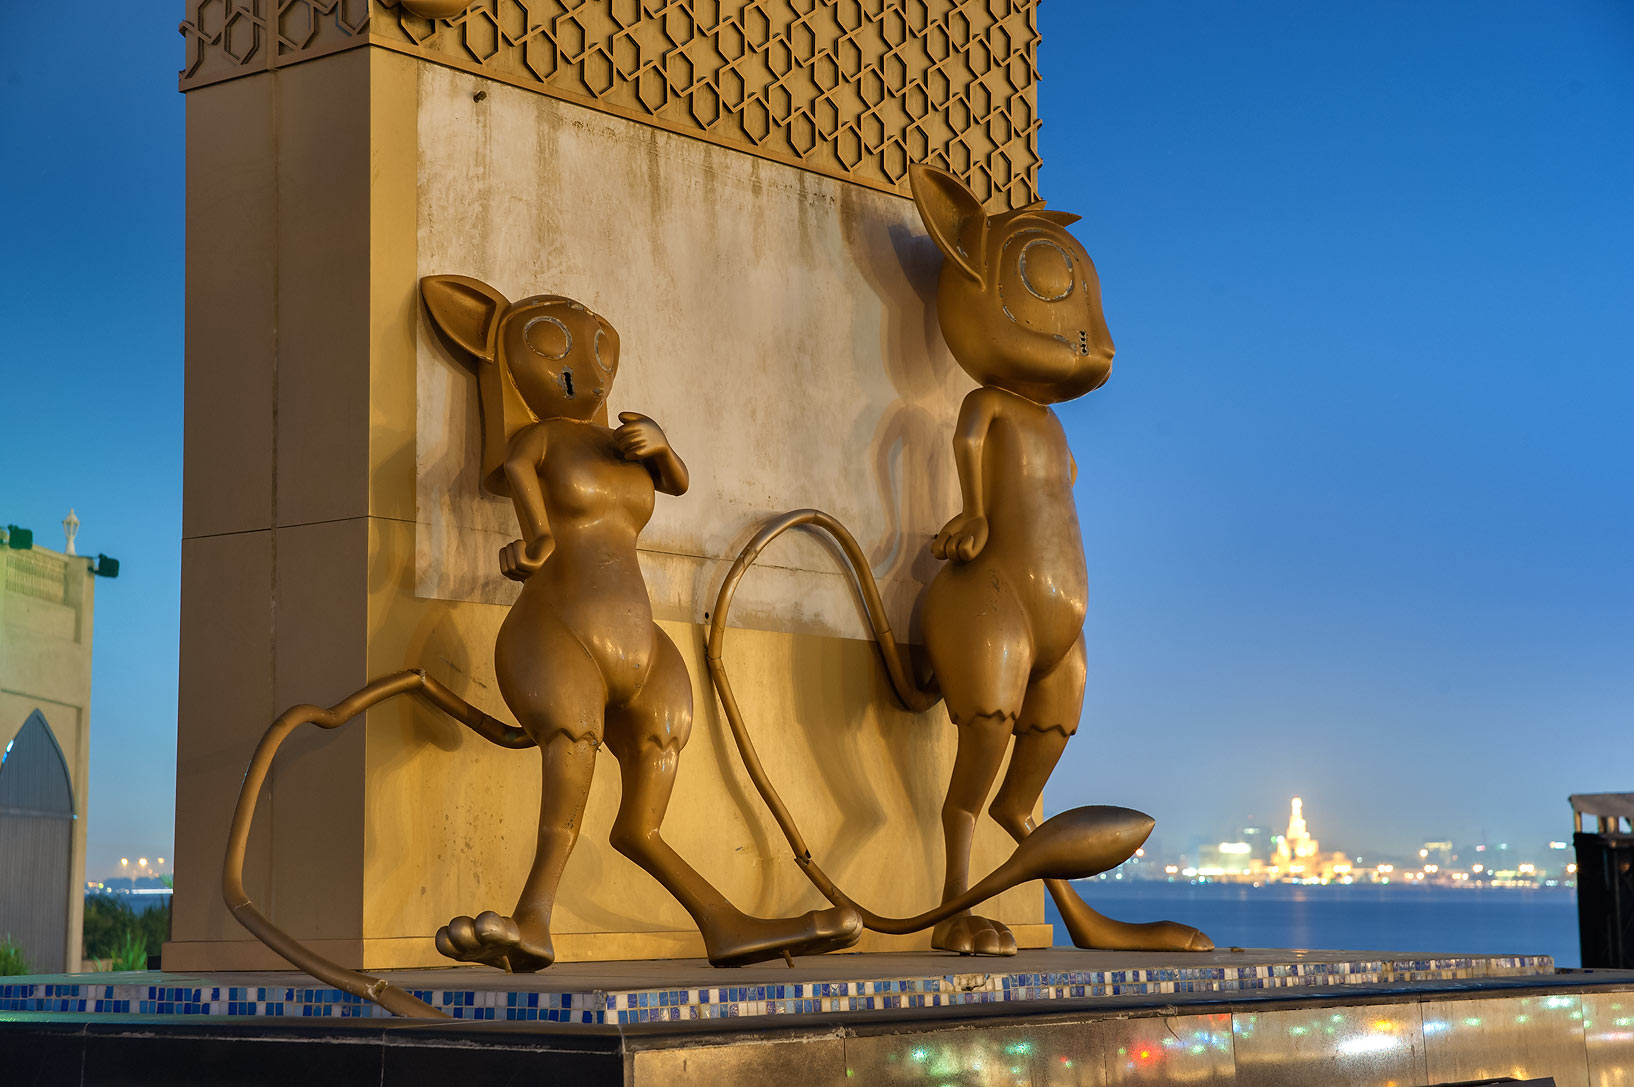 Countdown clock with mice attached on Corniche promenade. Doha, Qatar